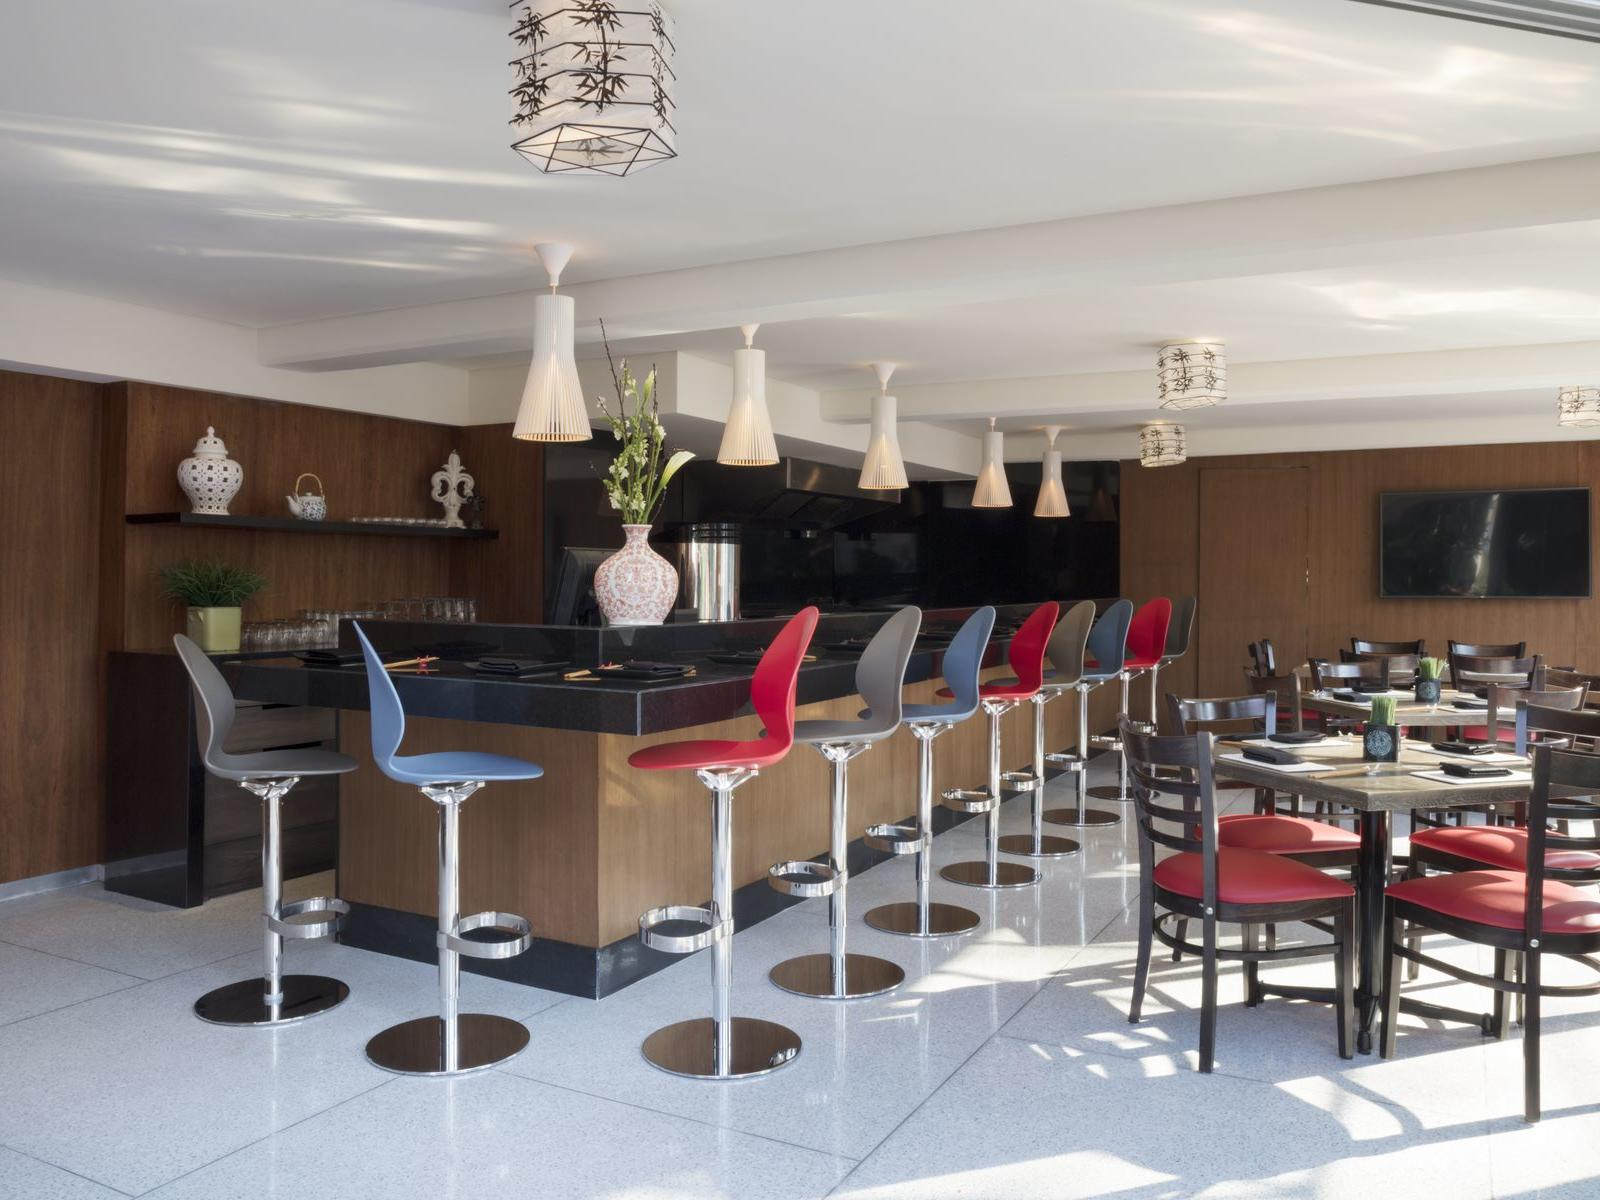 bar area with stools and tables